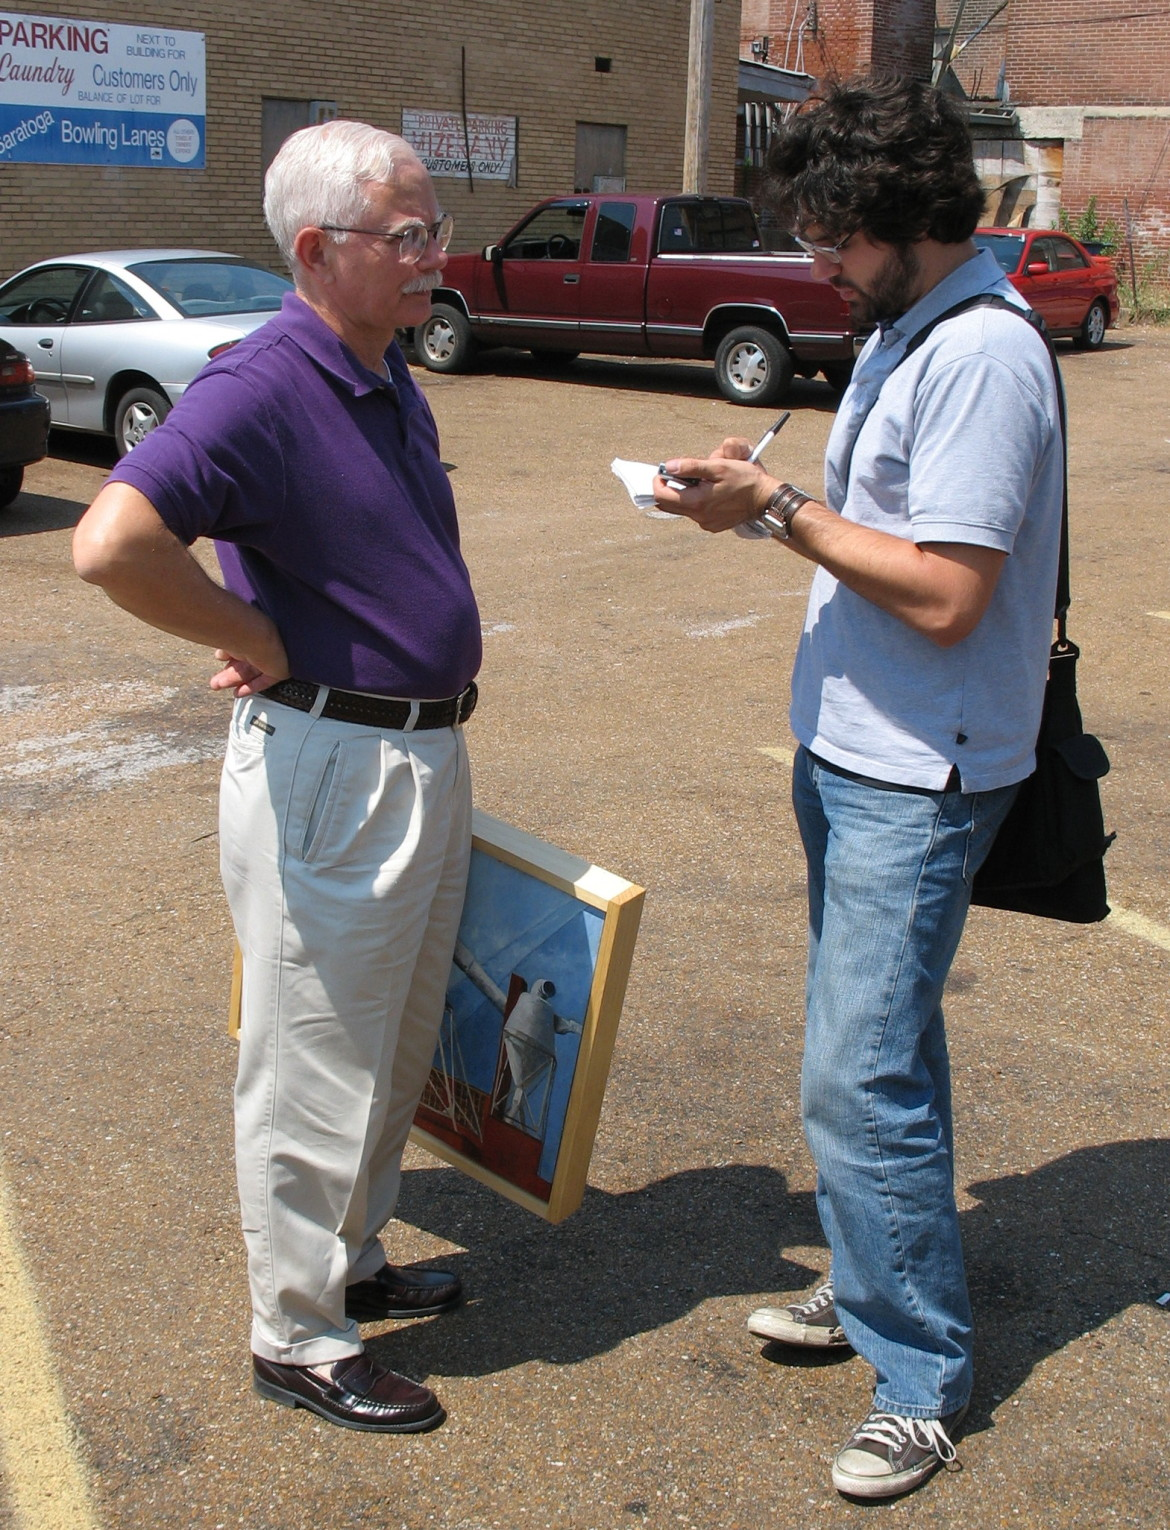 Ryan Heinz of The Mid-County journal interviews the artist Steve Turner.  ryan's front page article was the best publicity we could muster.